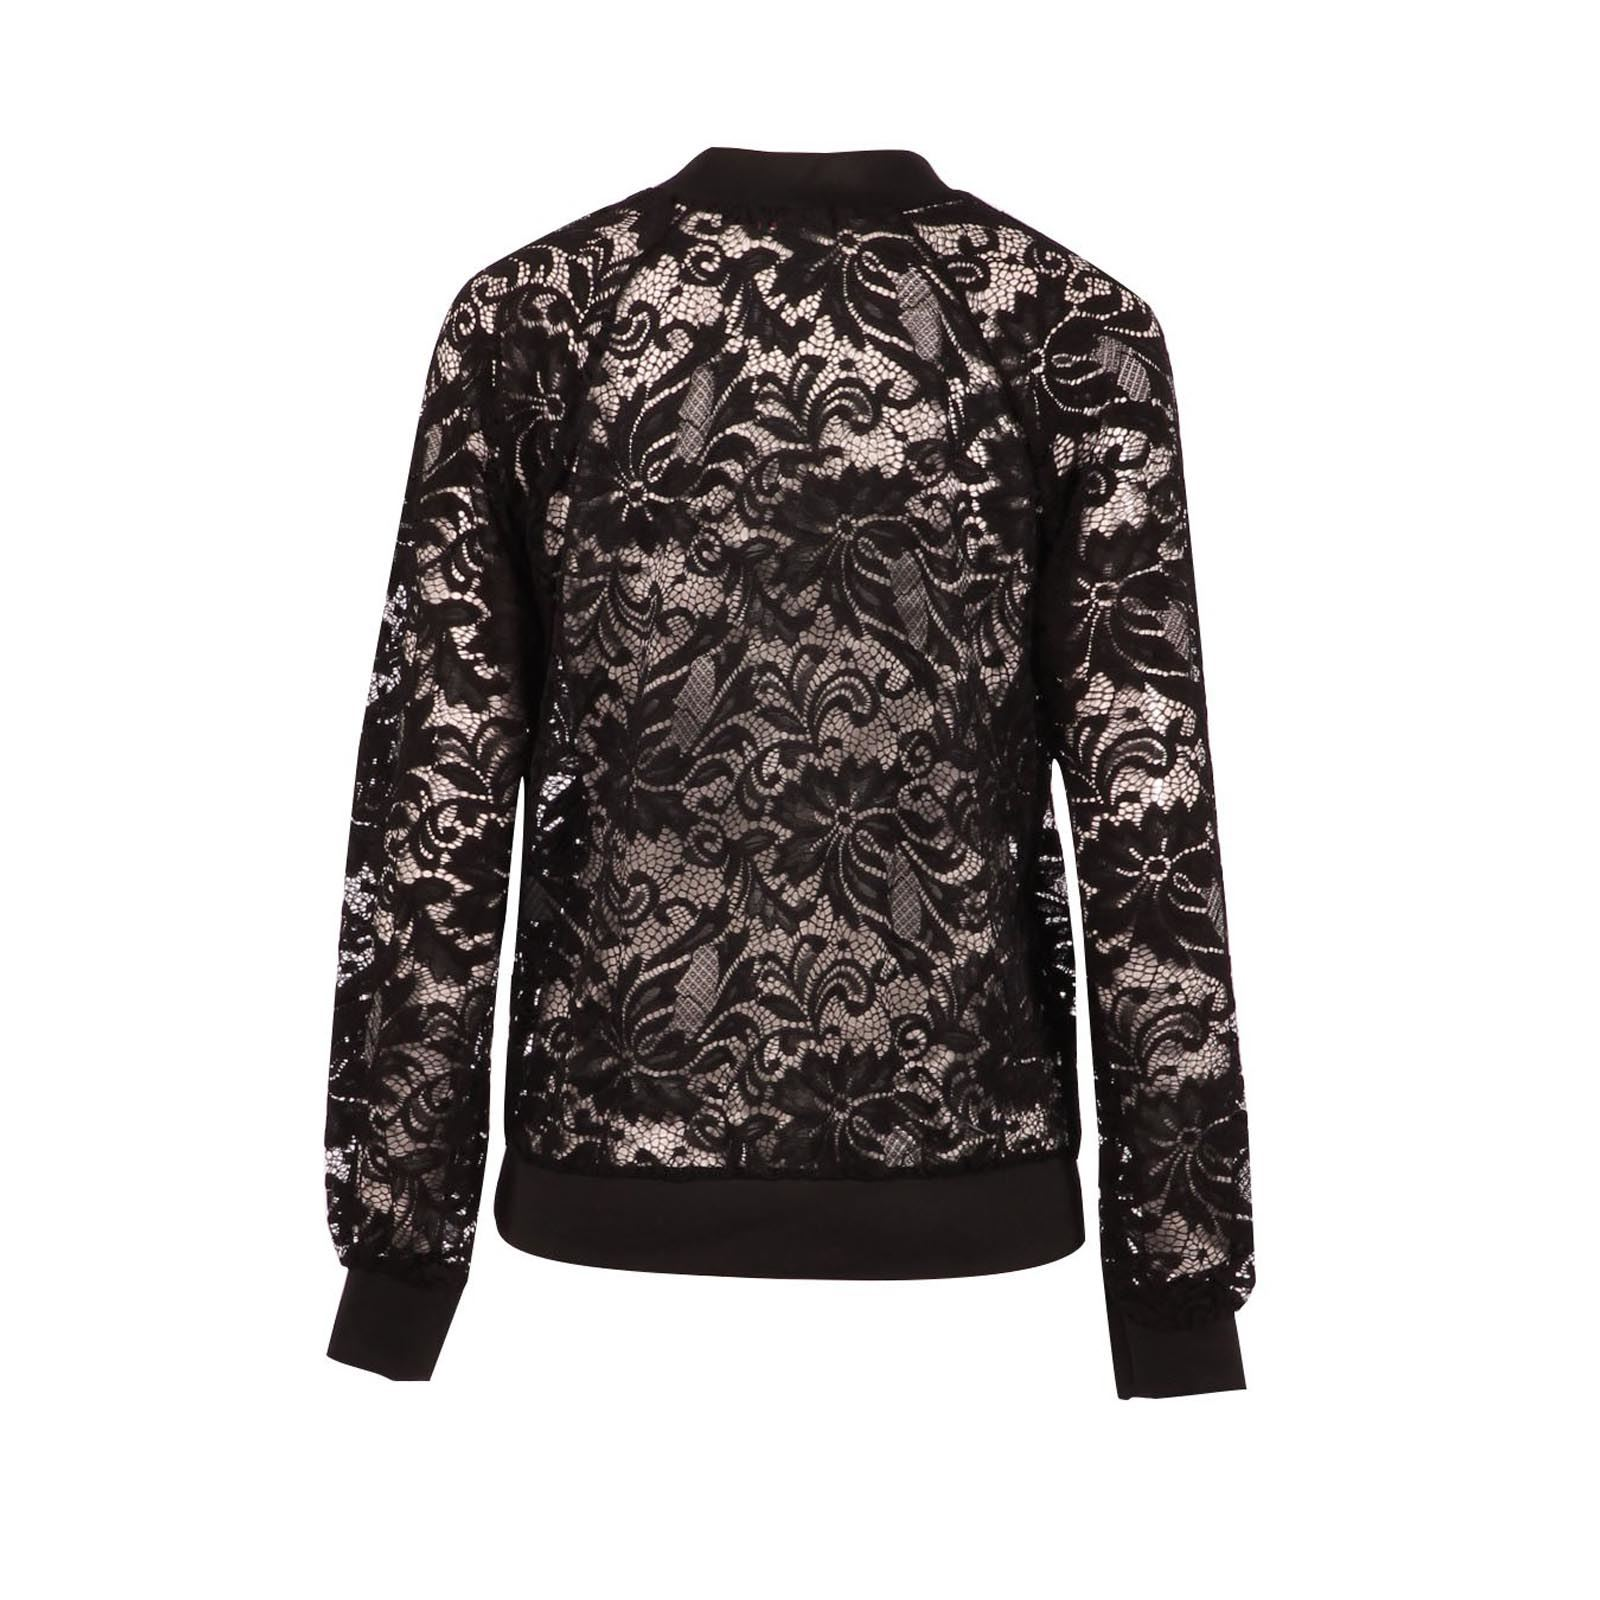 Floral jackets for women